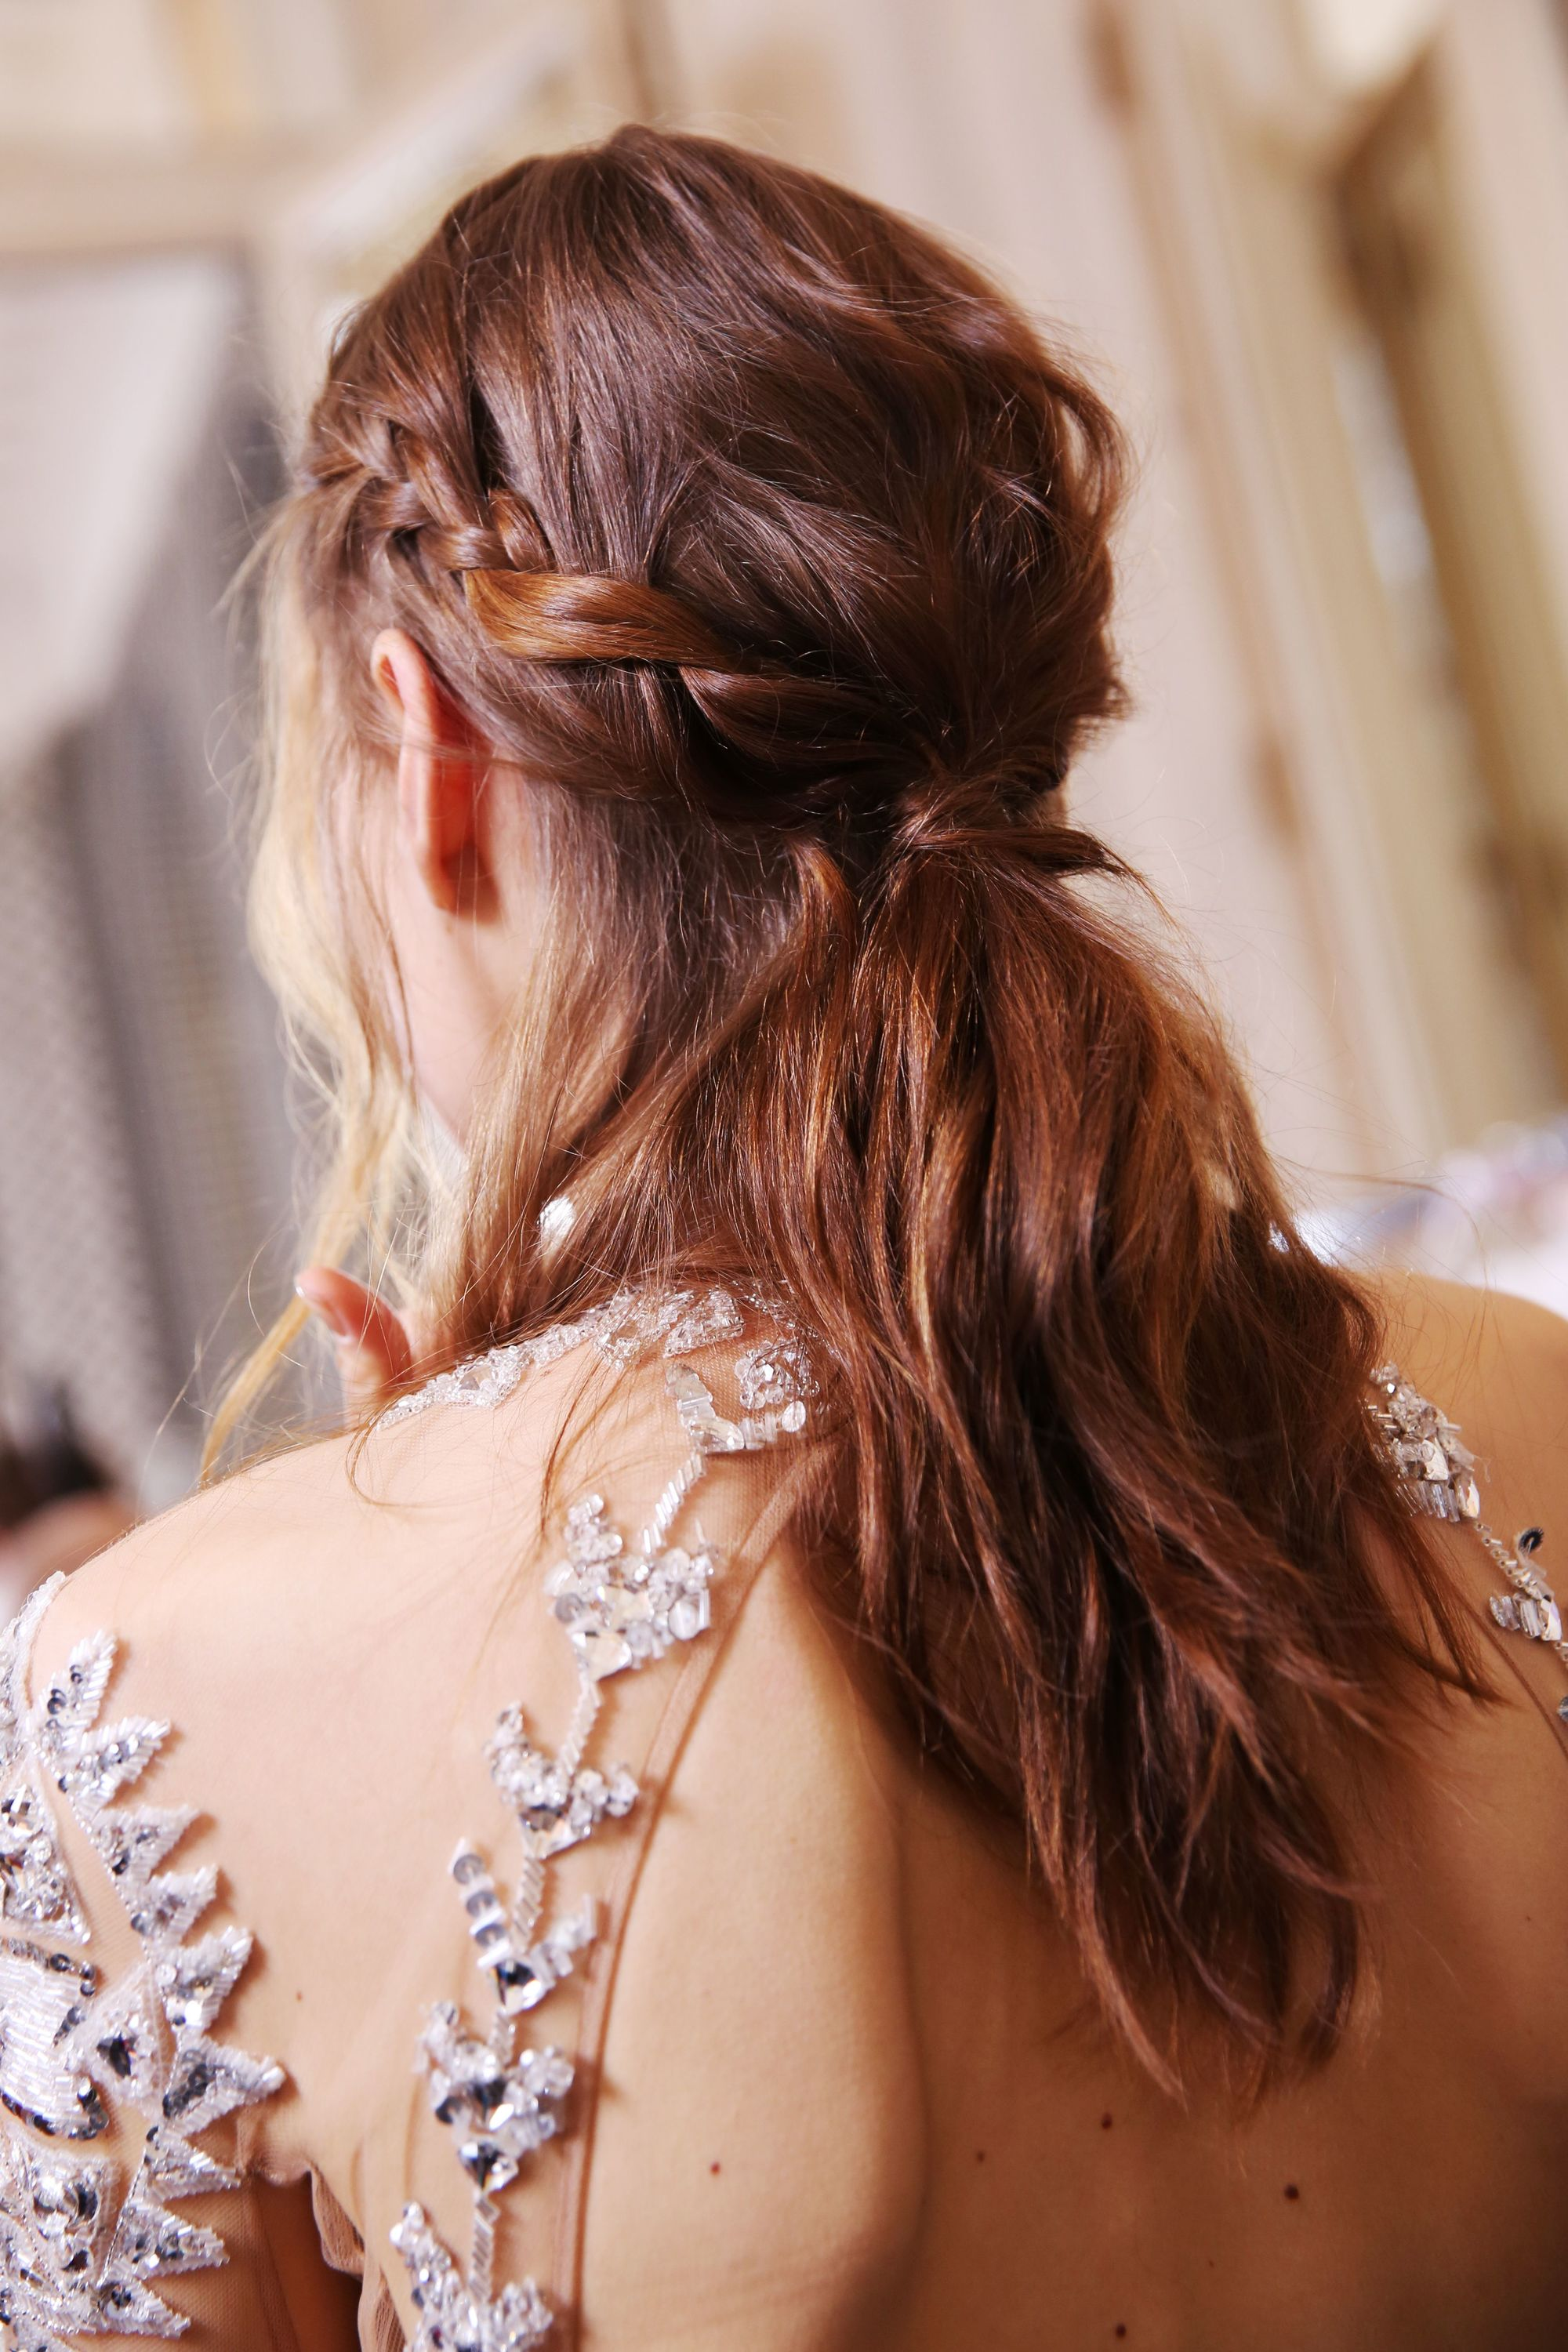 brunette model backstage wearing an embroidered sheer dress with her hair in a braided half up half down